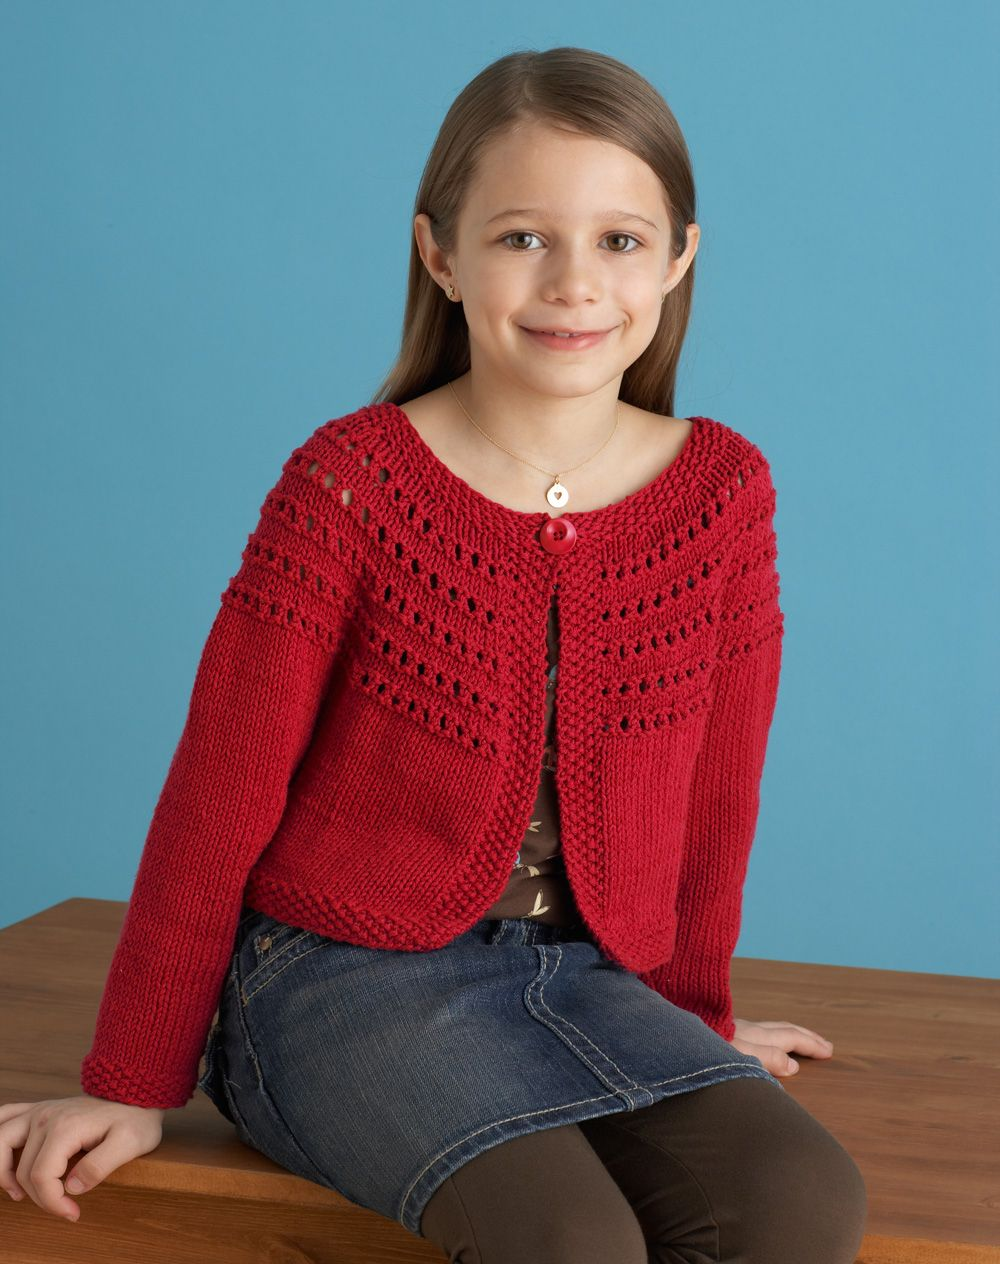 Knitting Sweaters For Girls : Sweaters hoodies and dresses for kids tweens